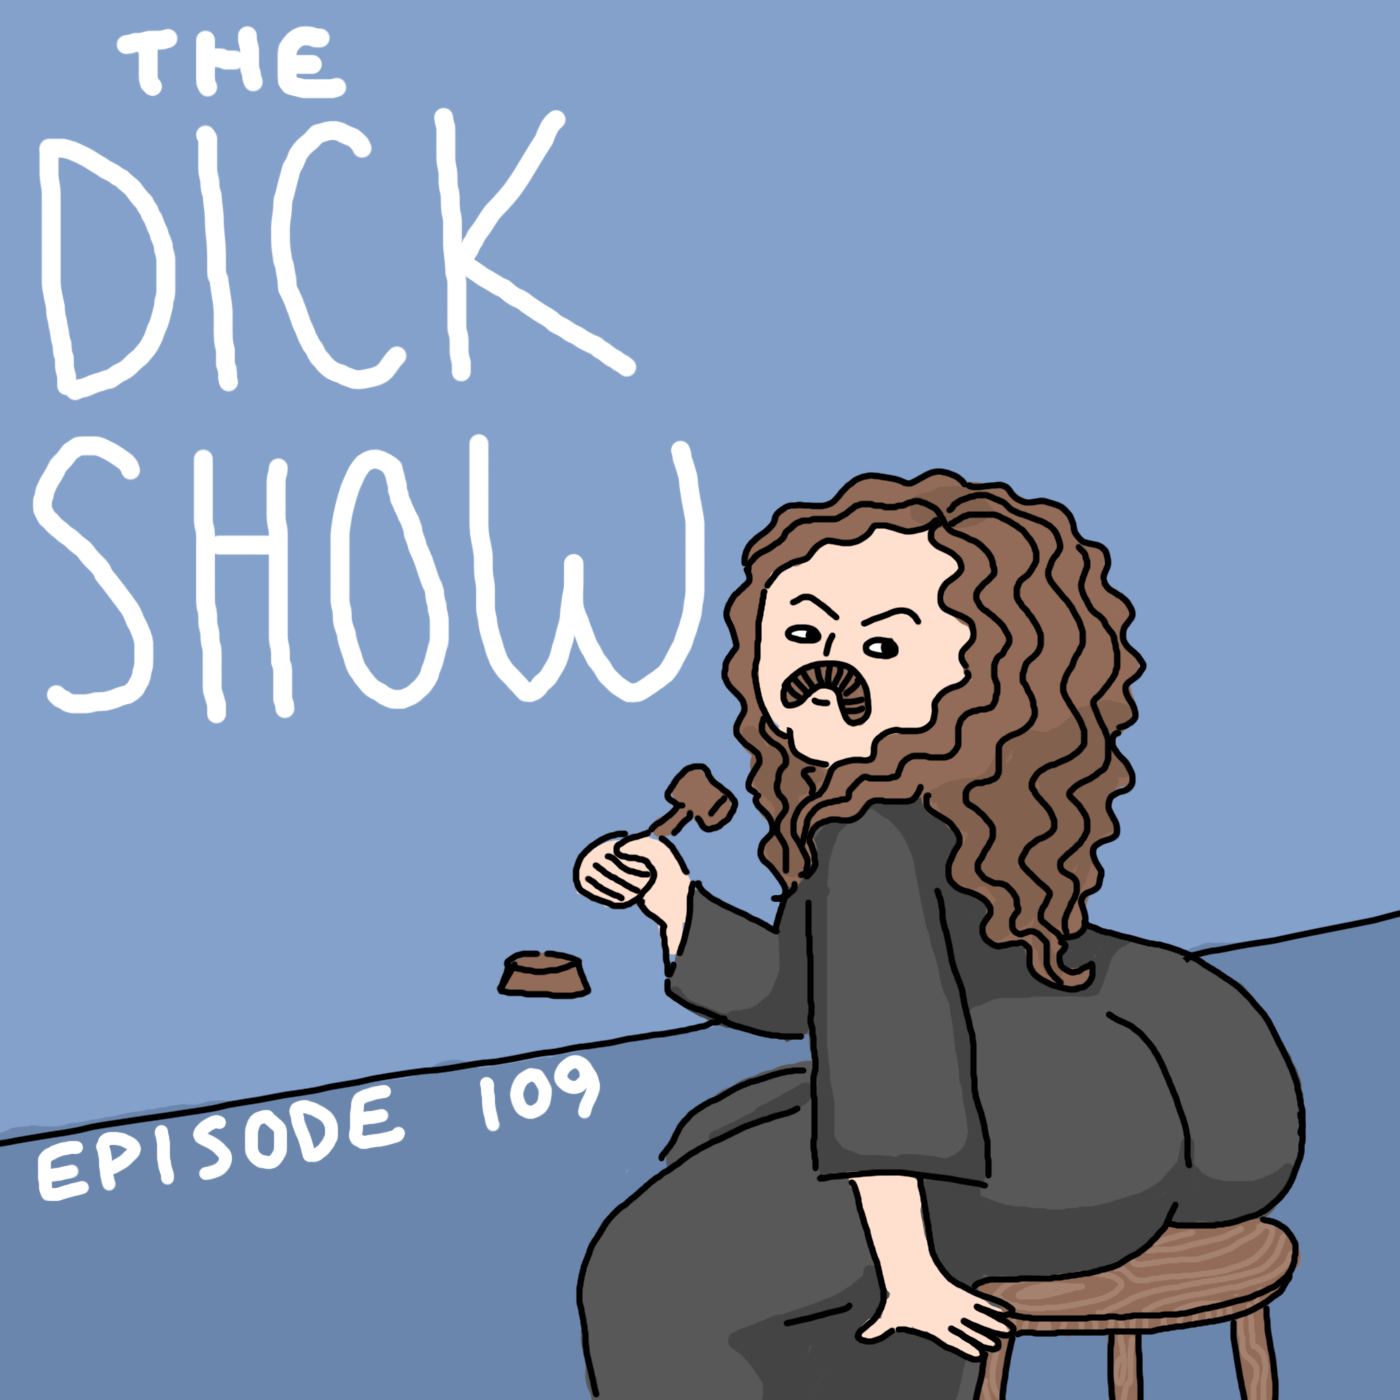 Episode 109 - Dick on Road Rage: Dallas - The Dick Show